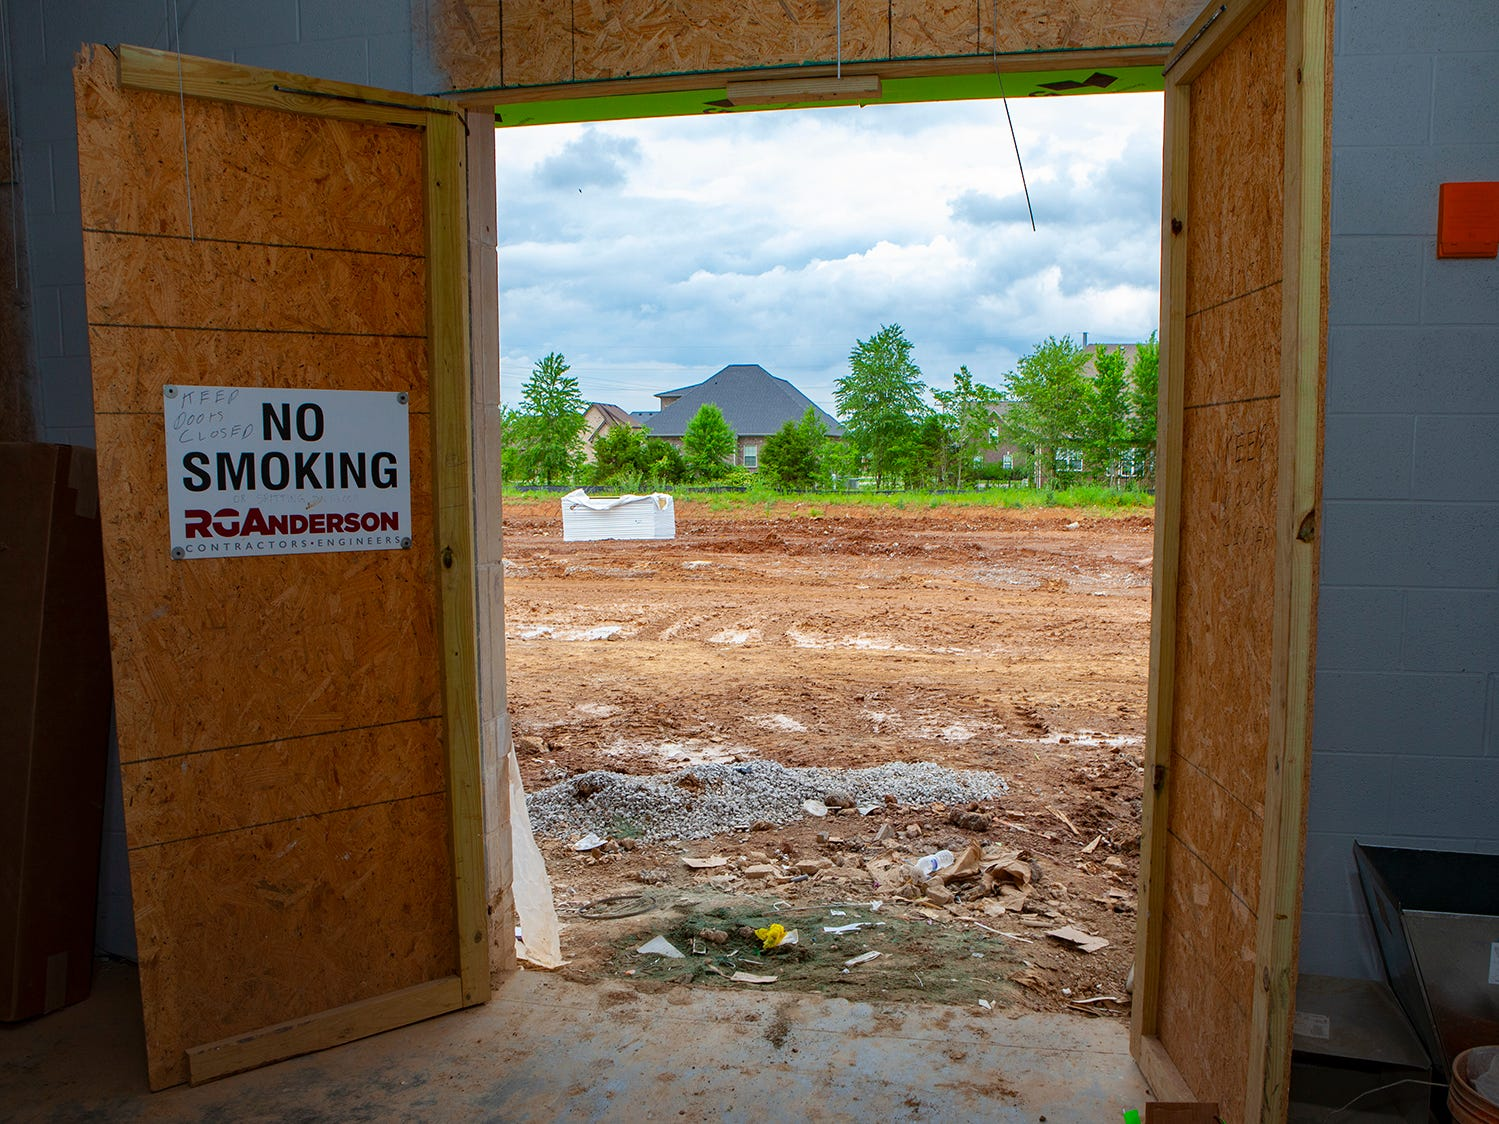 The view from the bus room where Salem Elementary students will arrive and exit. Murfreesboro City Schools' 13th campus will open in July 2019.